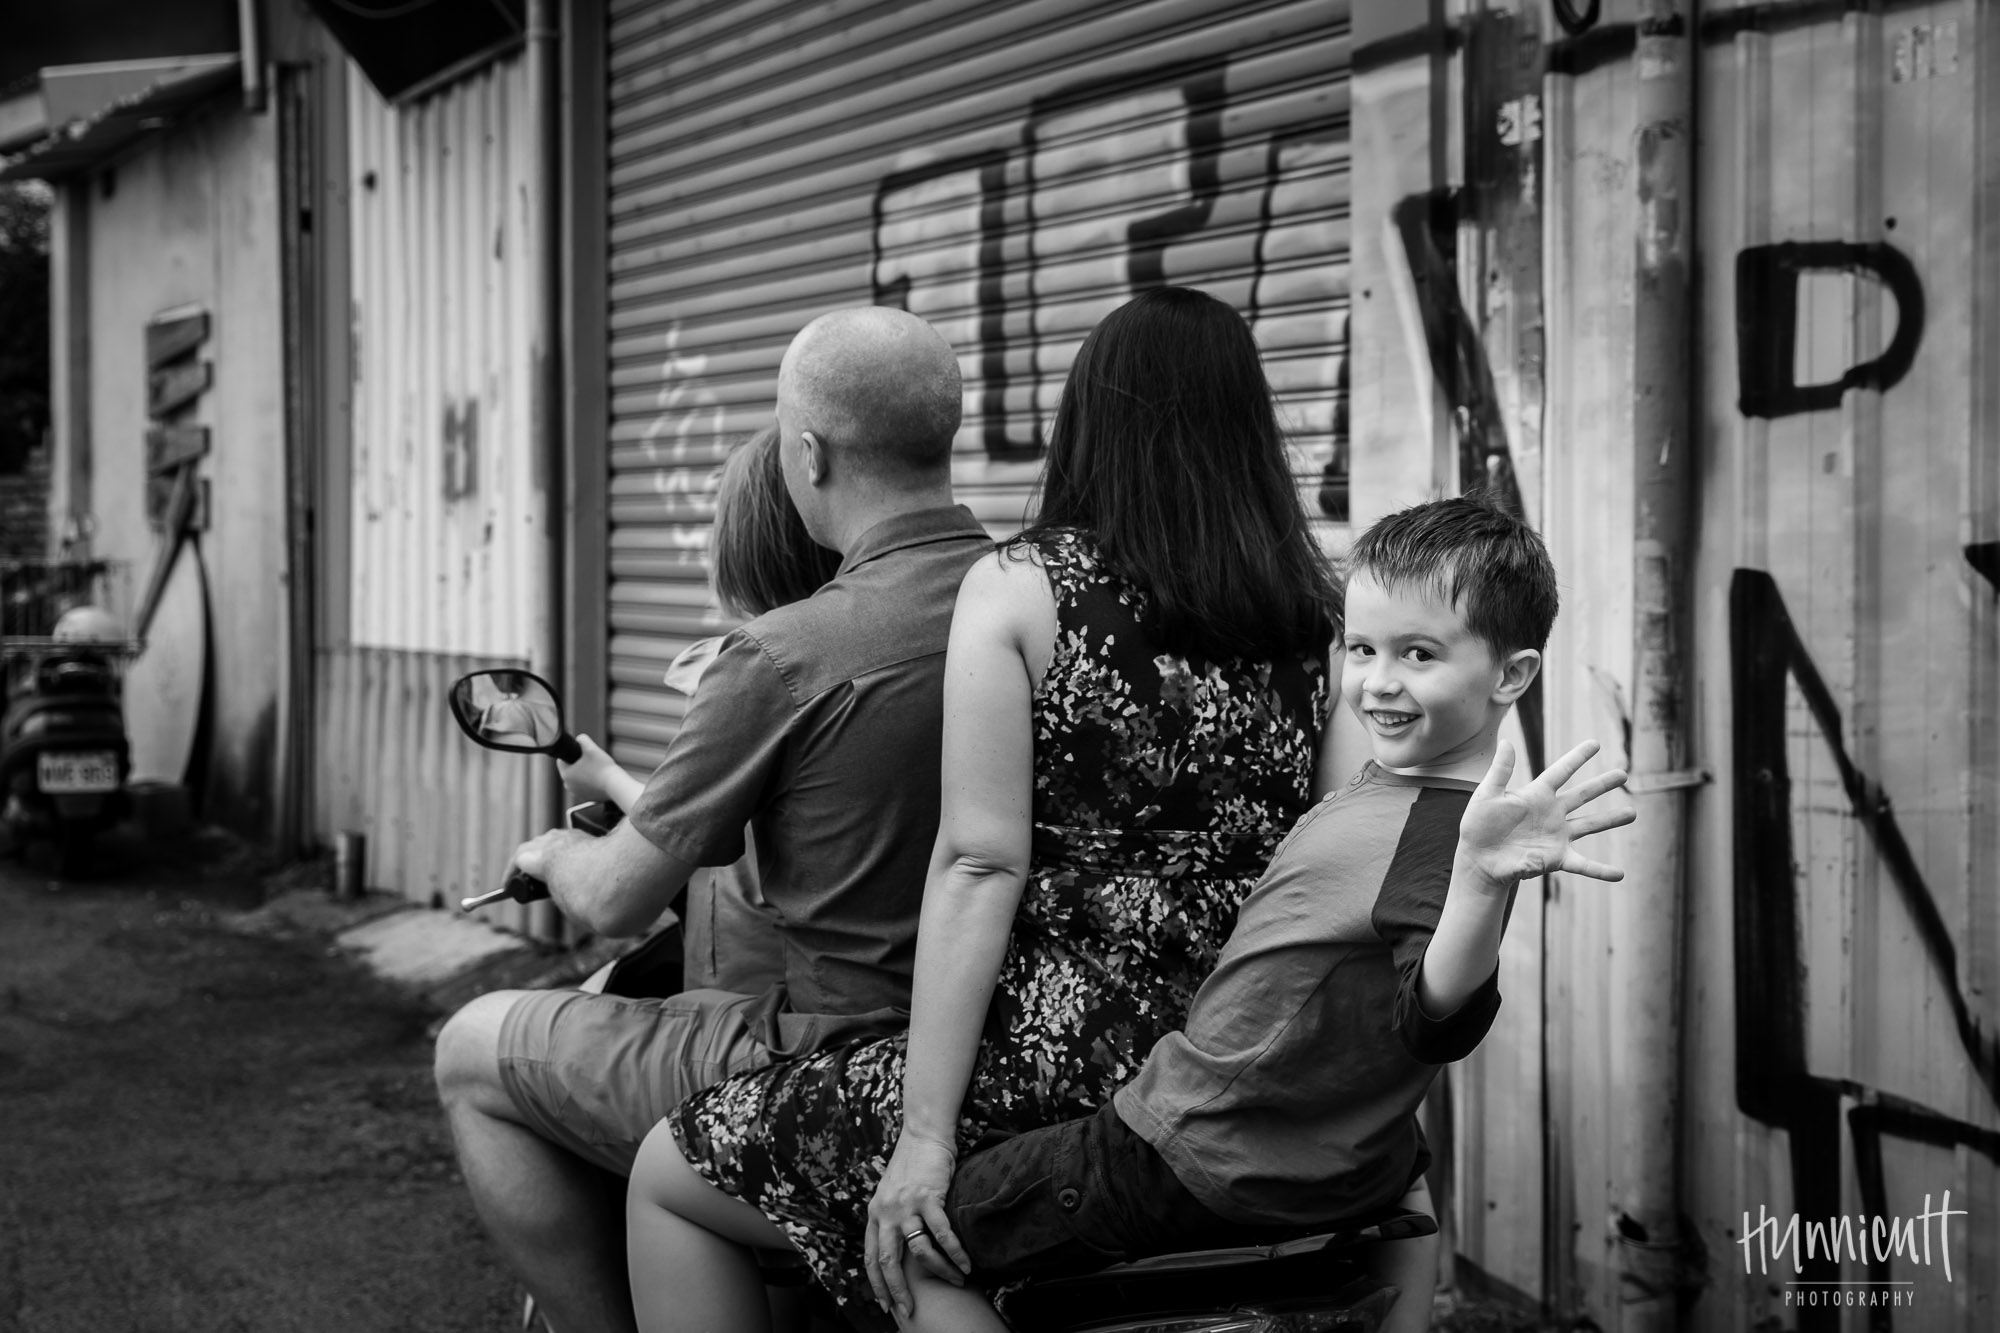 TAichung-family-expat-photographer-23